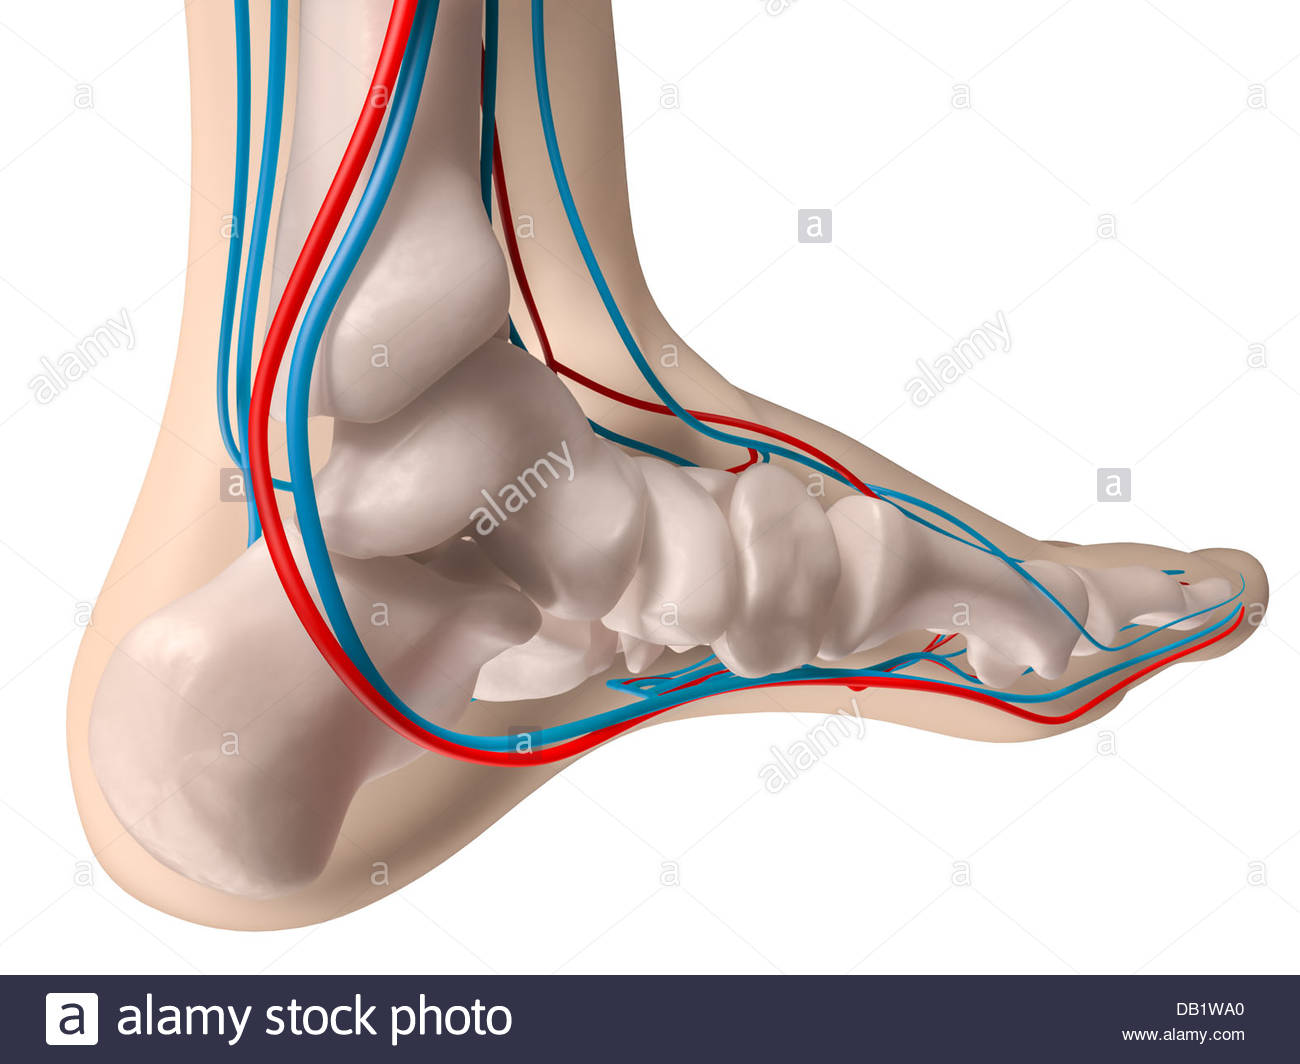 Digital Medical Illustration Depicting The Rear View Of The Foot